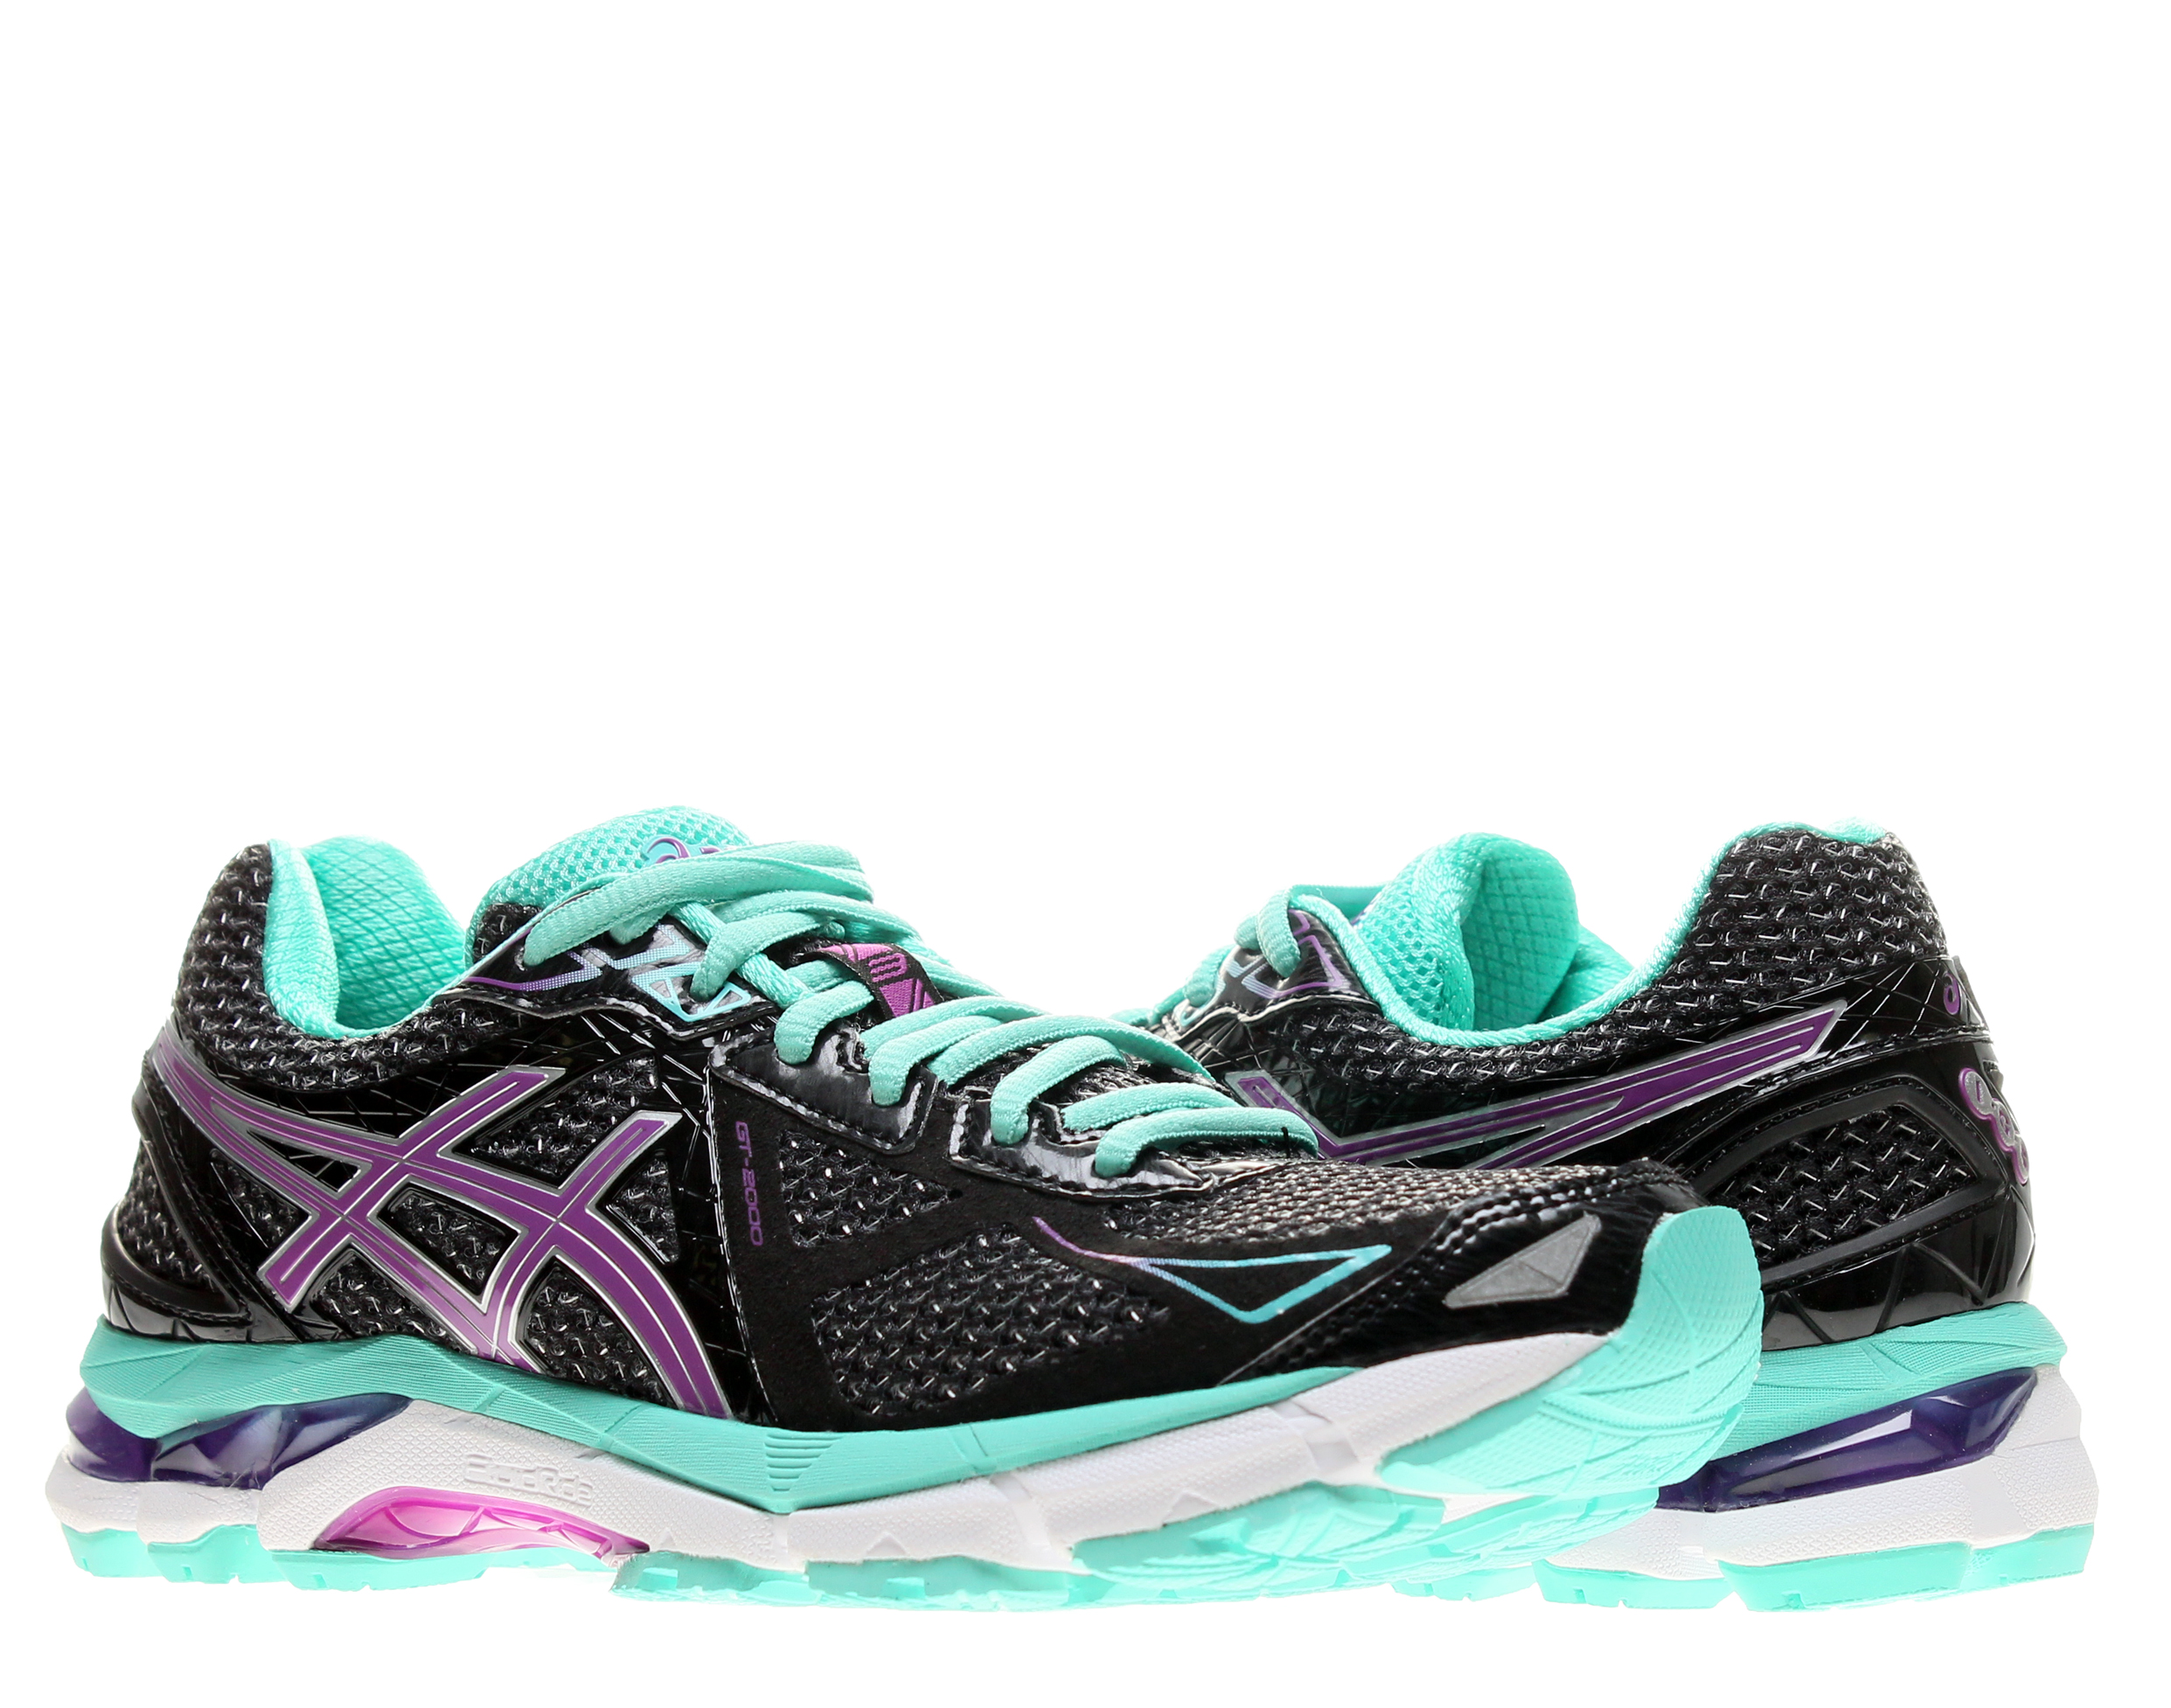 Asics GT-2000 3 Women's Running Shoes Size 6 by Asics